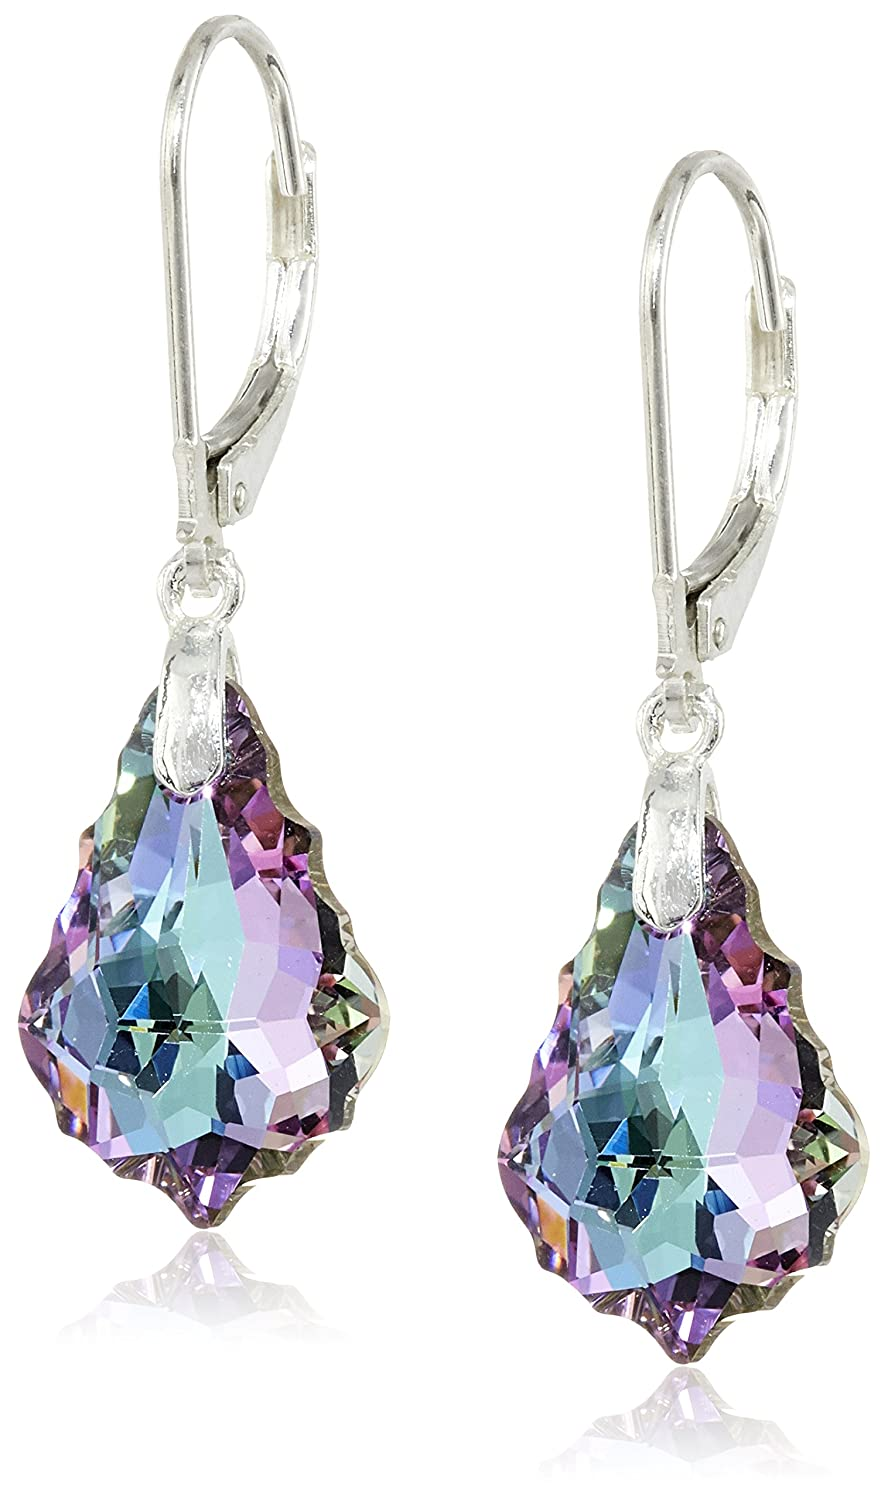 lightbox stone disciple product in earrings purple clothed